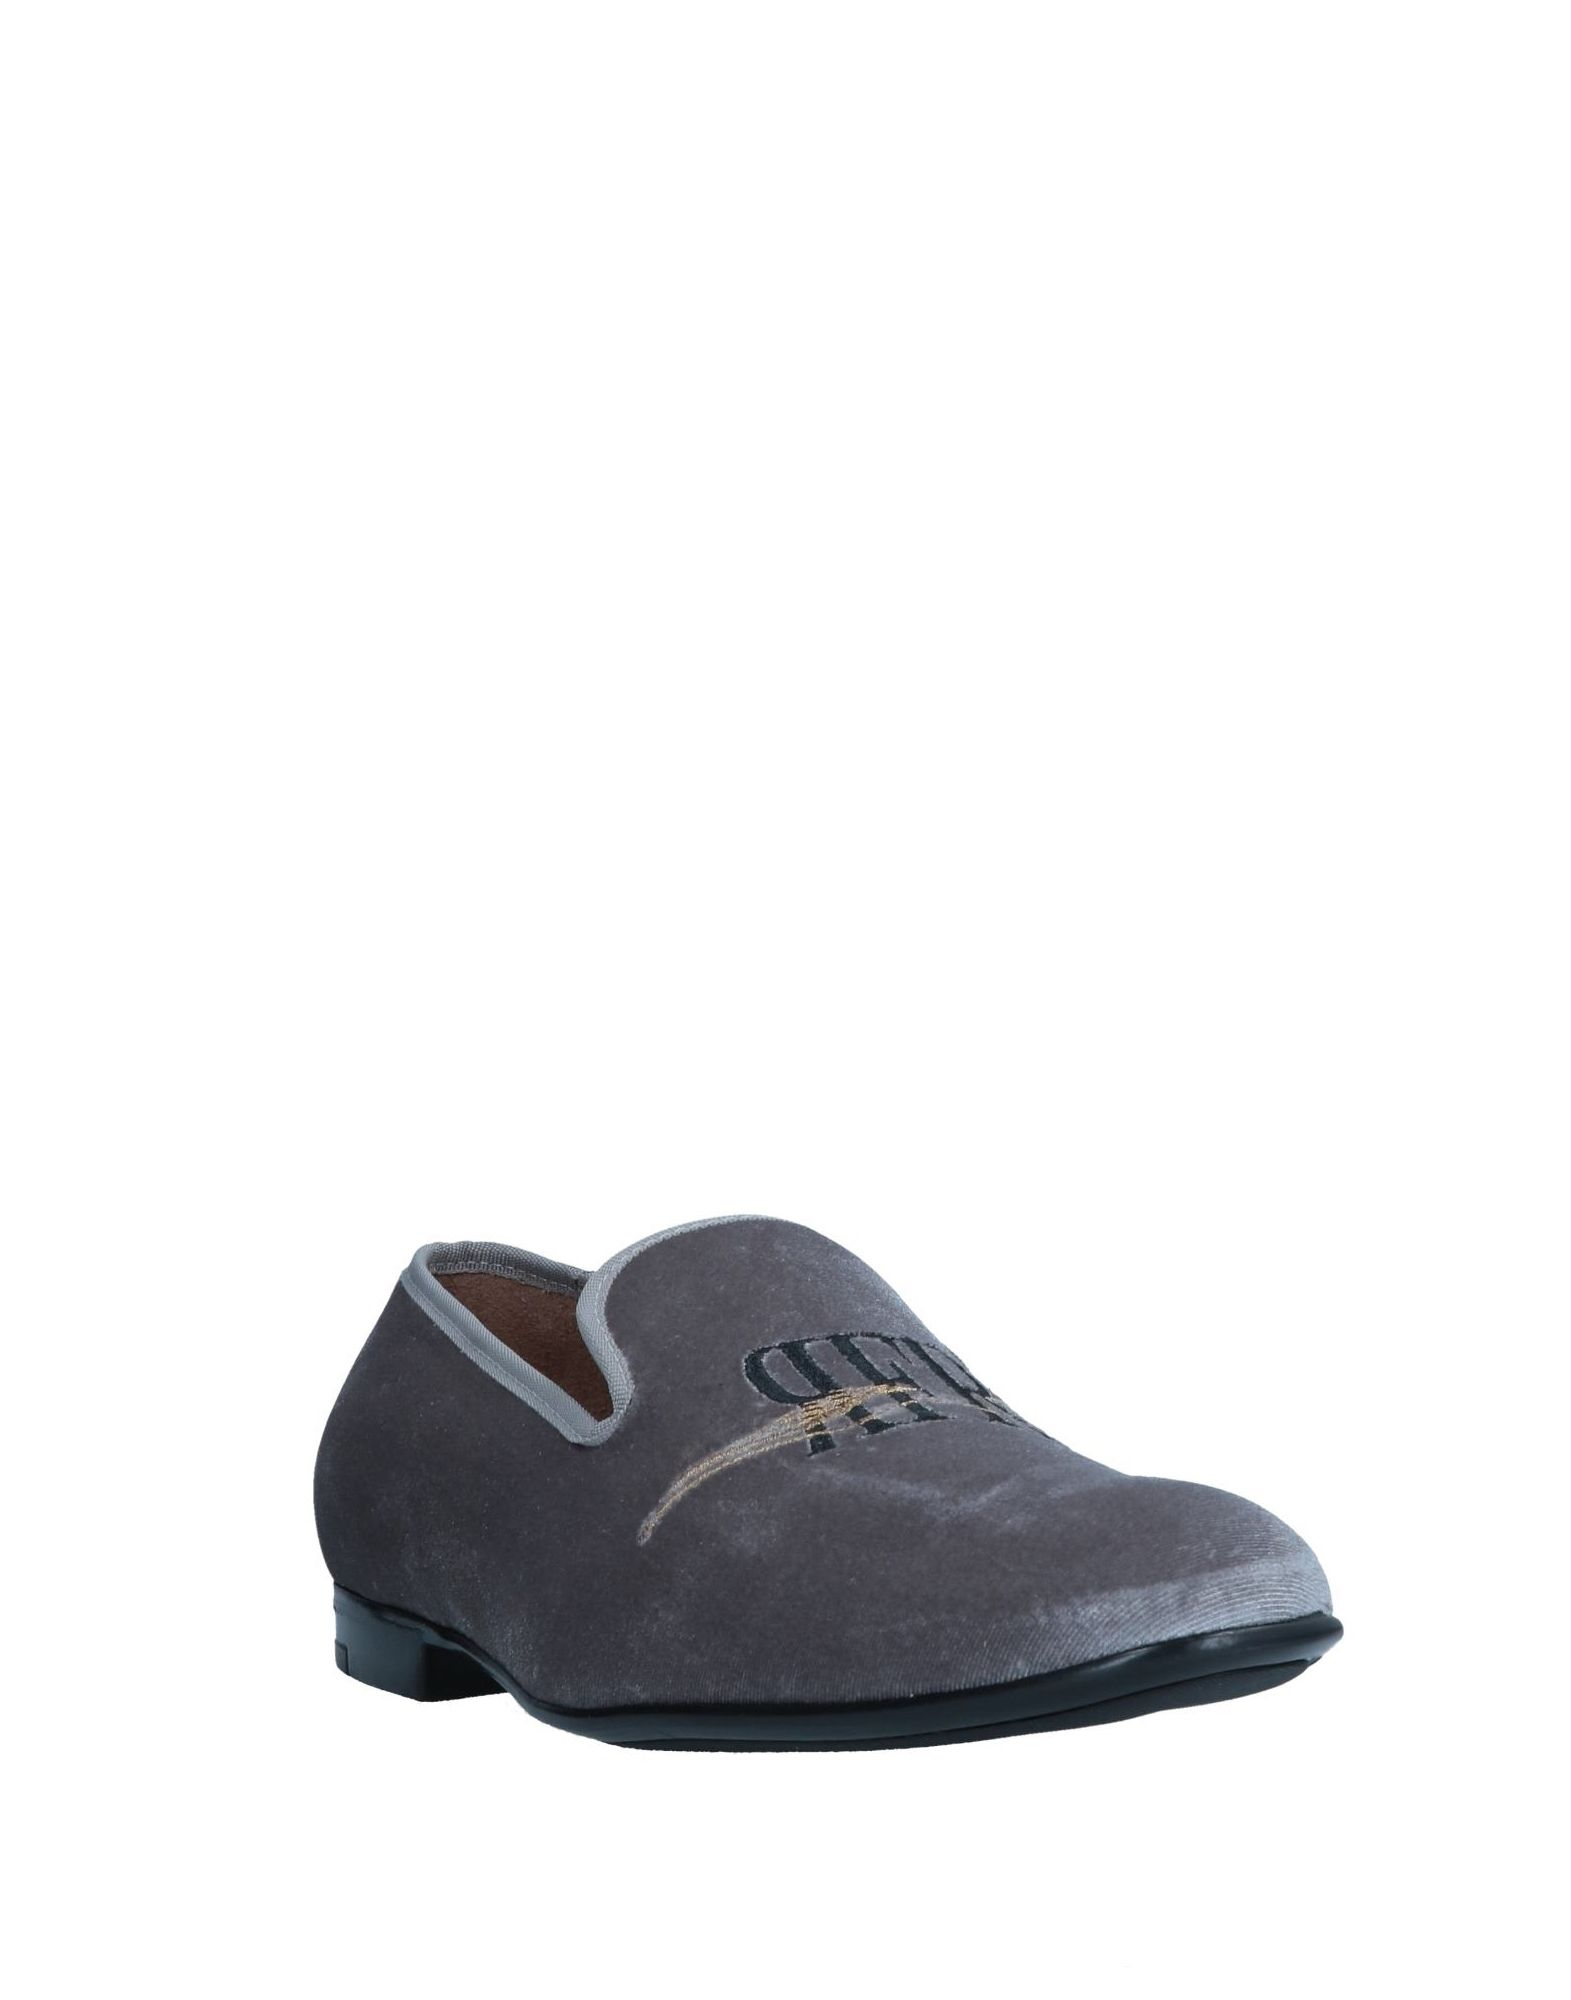 Fabiano Ricci Loafers Loafers Loafers - Men Fabiano Ricci Loafers online on  United Kingdom - 11546770KJ 03664a